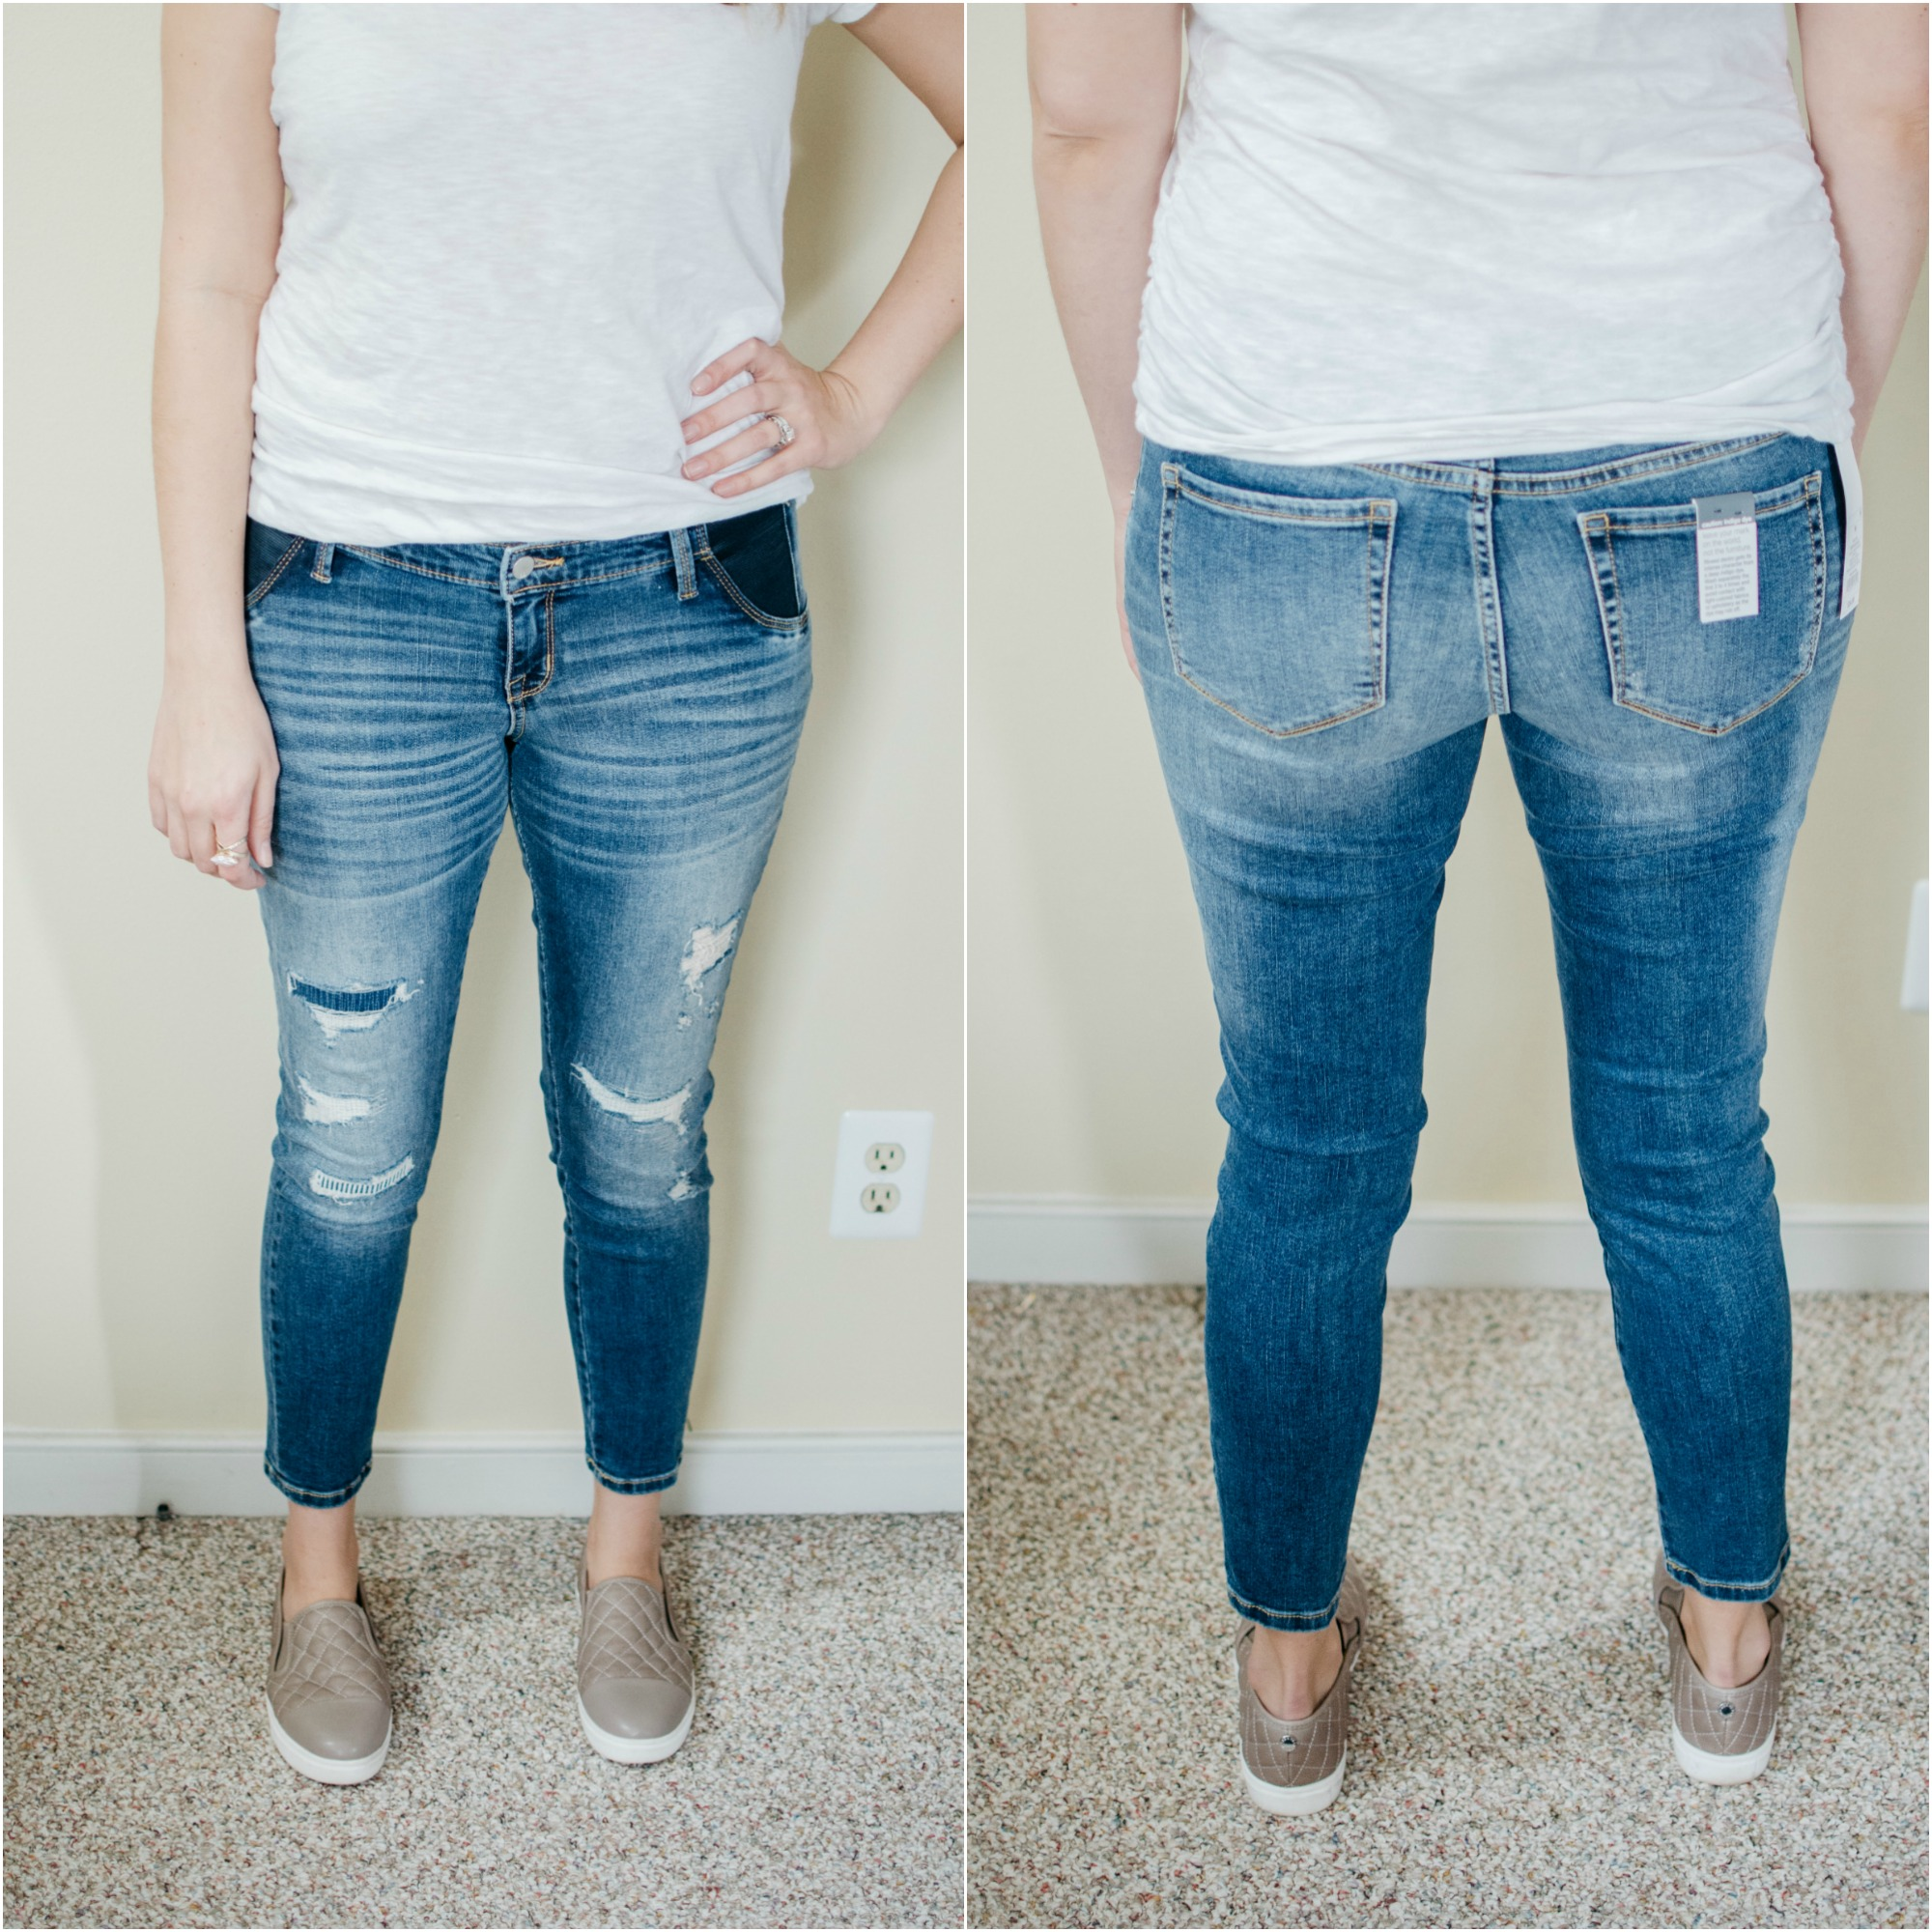 best maternity jeans - target maternity jeans review | See reviews of over 15 maternity jeans brands by clicking through to this post! | bylaurenm.com